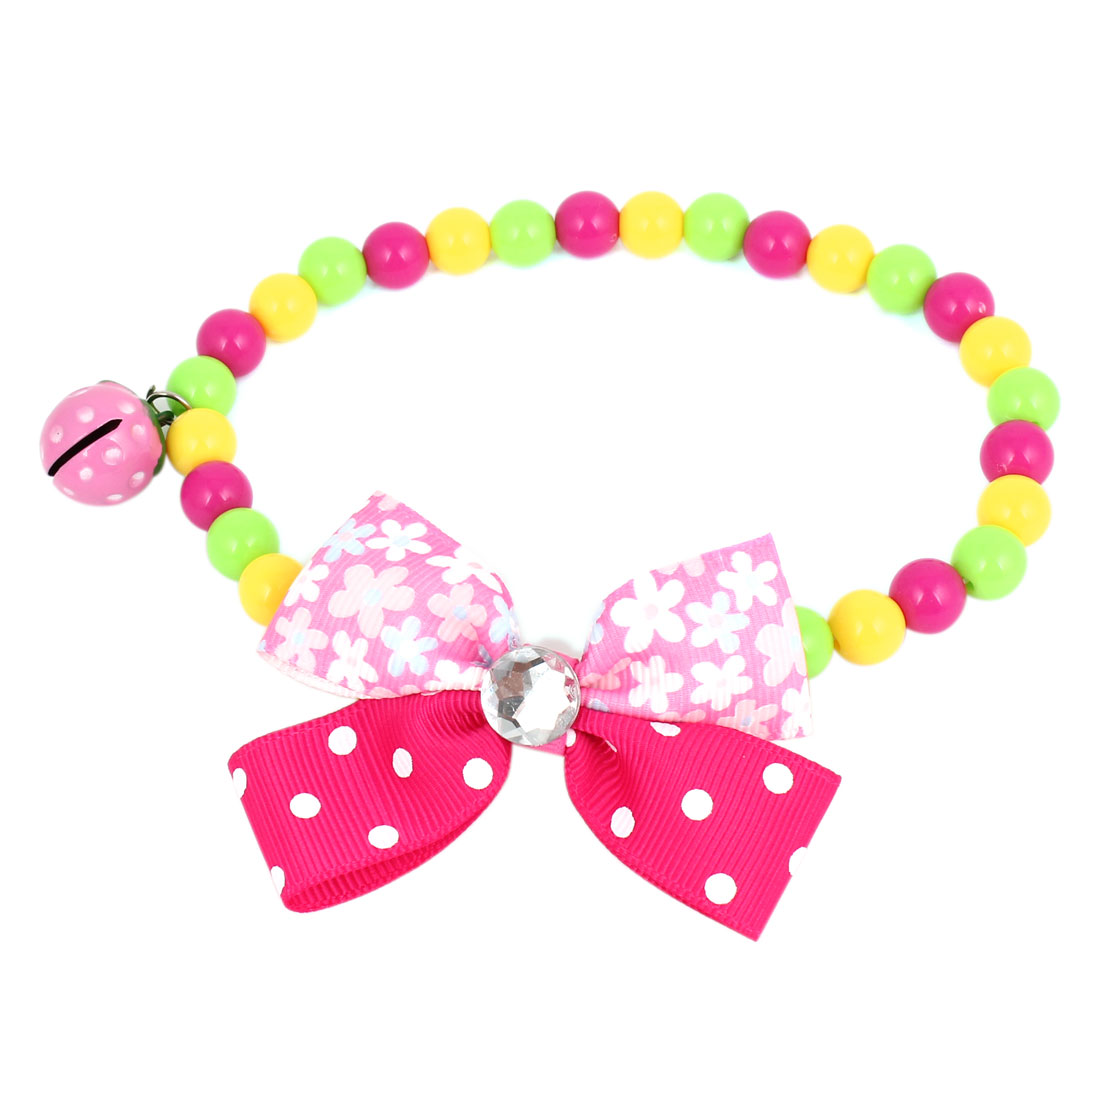 Metal Bell Pendant Bowtie Accent Pet Dog Plastic Round Beads Collar Necklace Assorted Color M